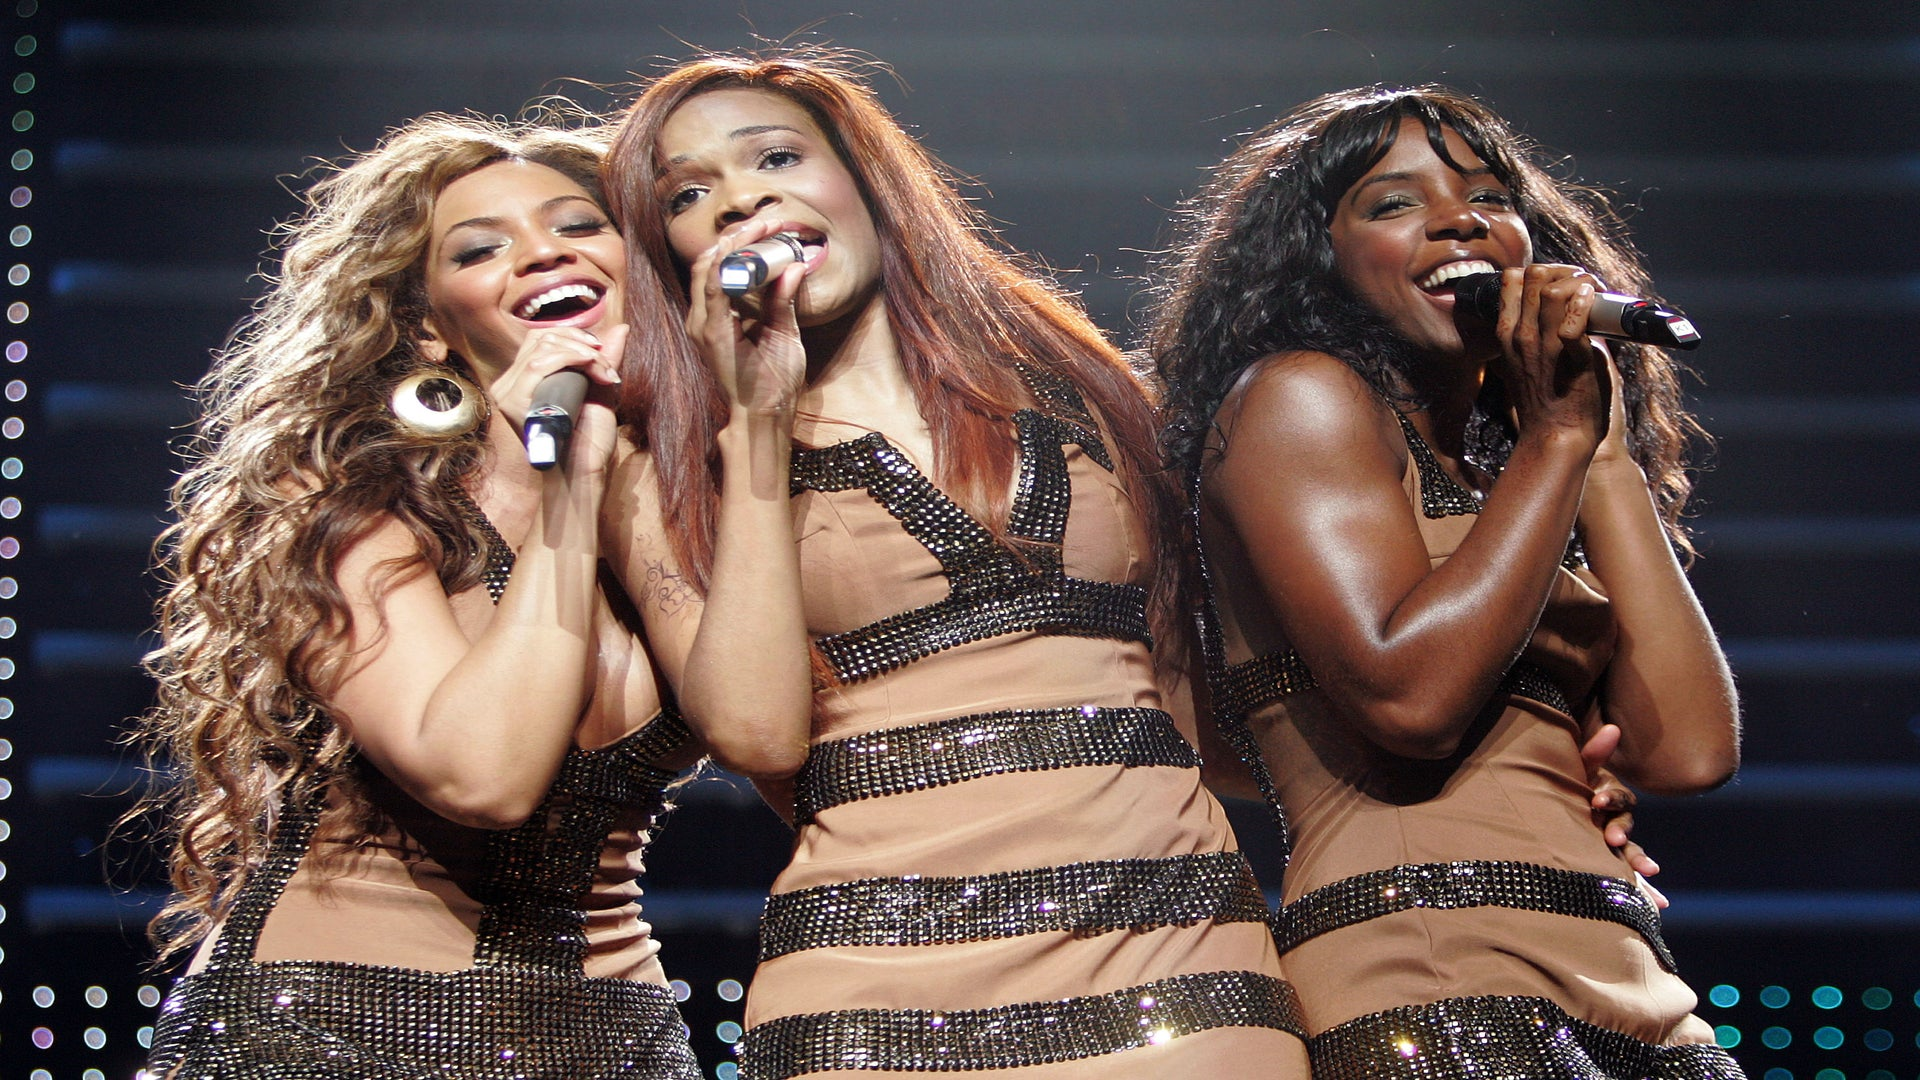 Mathew Knowles Said Destiny's Child 'Did Not Leave Our Eyes' When They Worked With R. Kelly